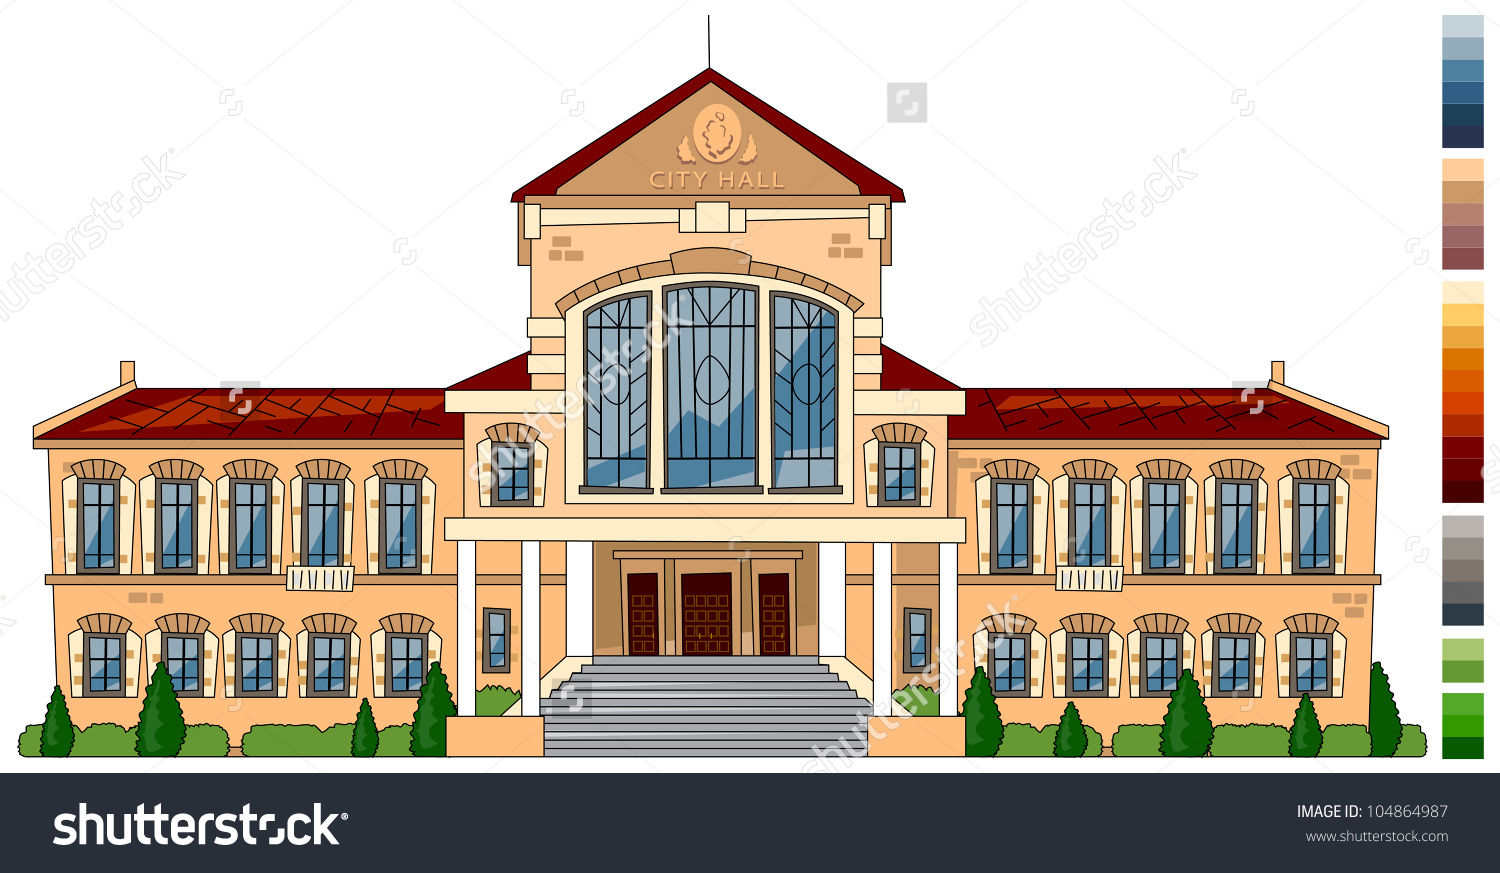 Cartoon City Hall Series Cartoon Buildings Stock Vector 104864987.